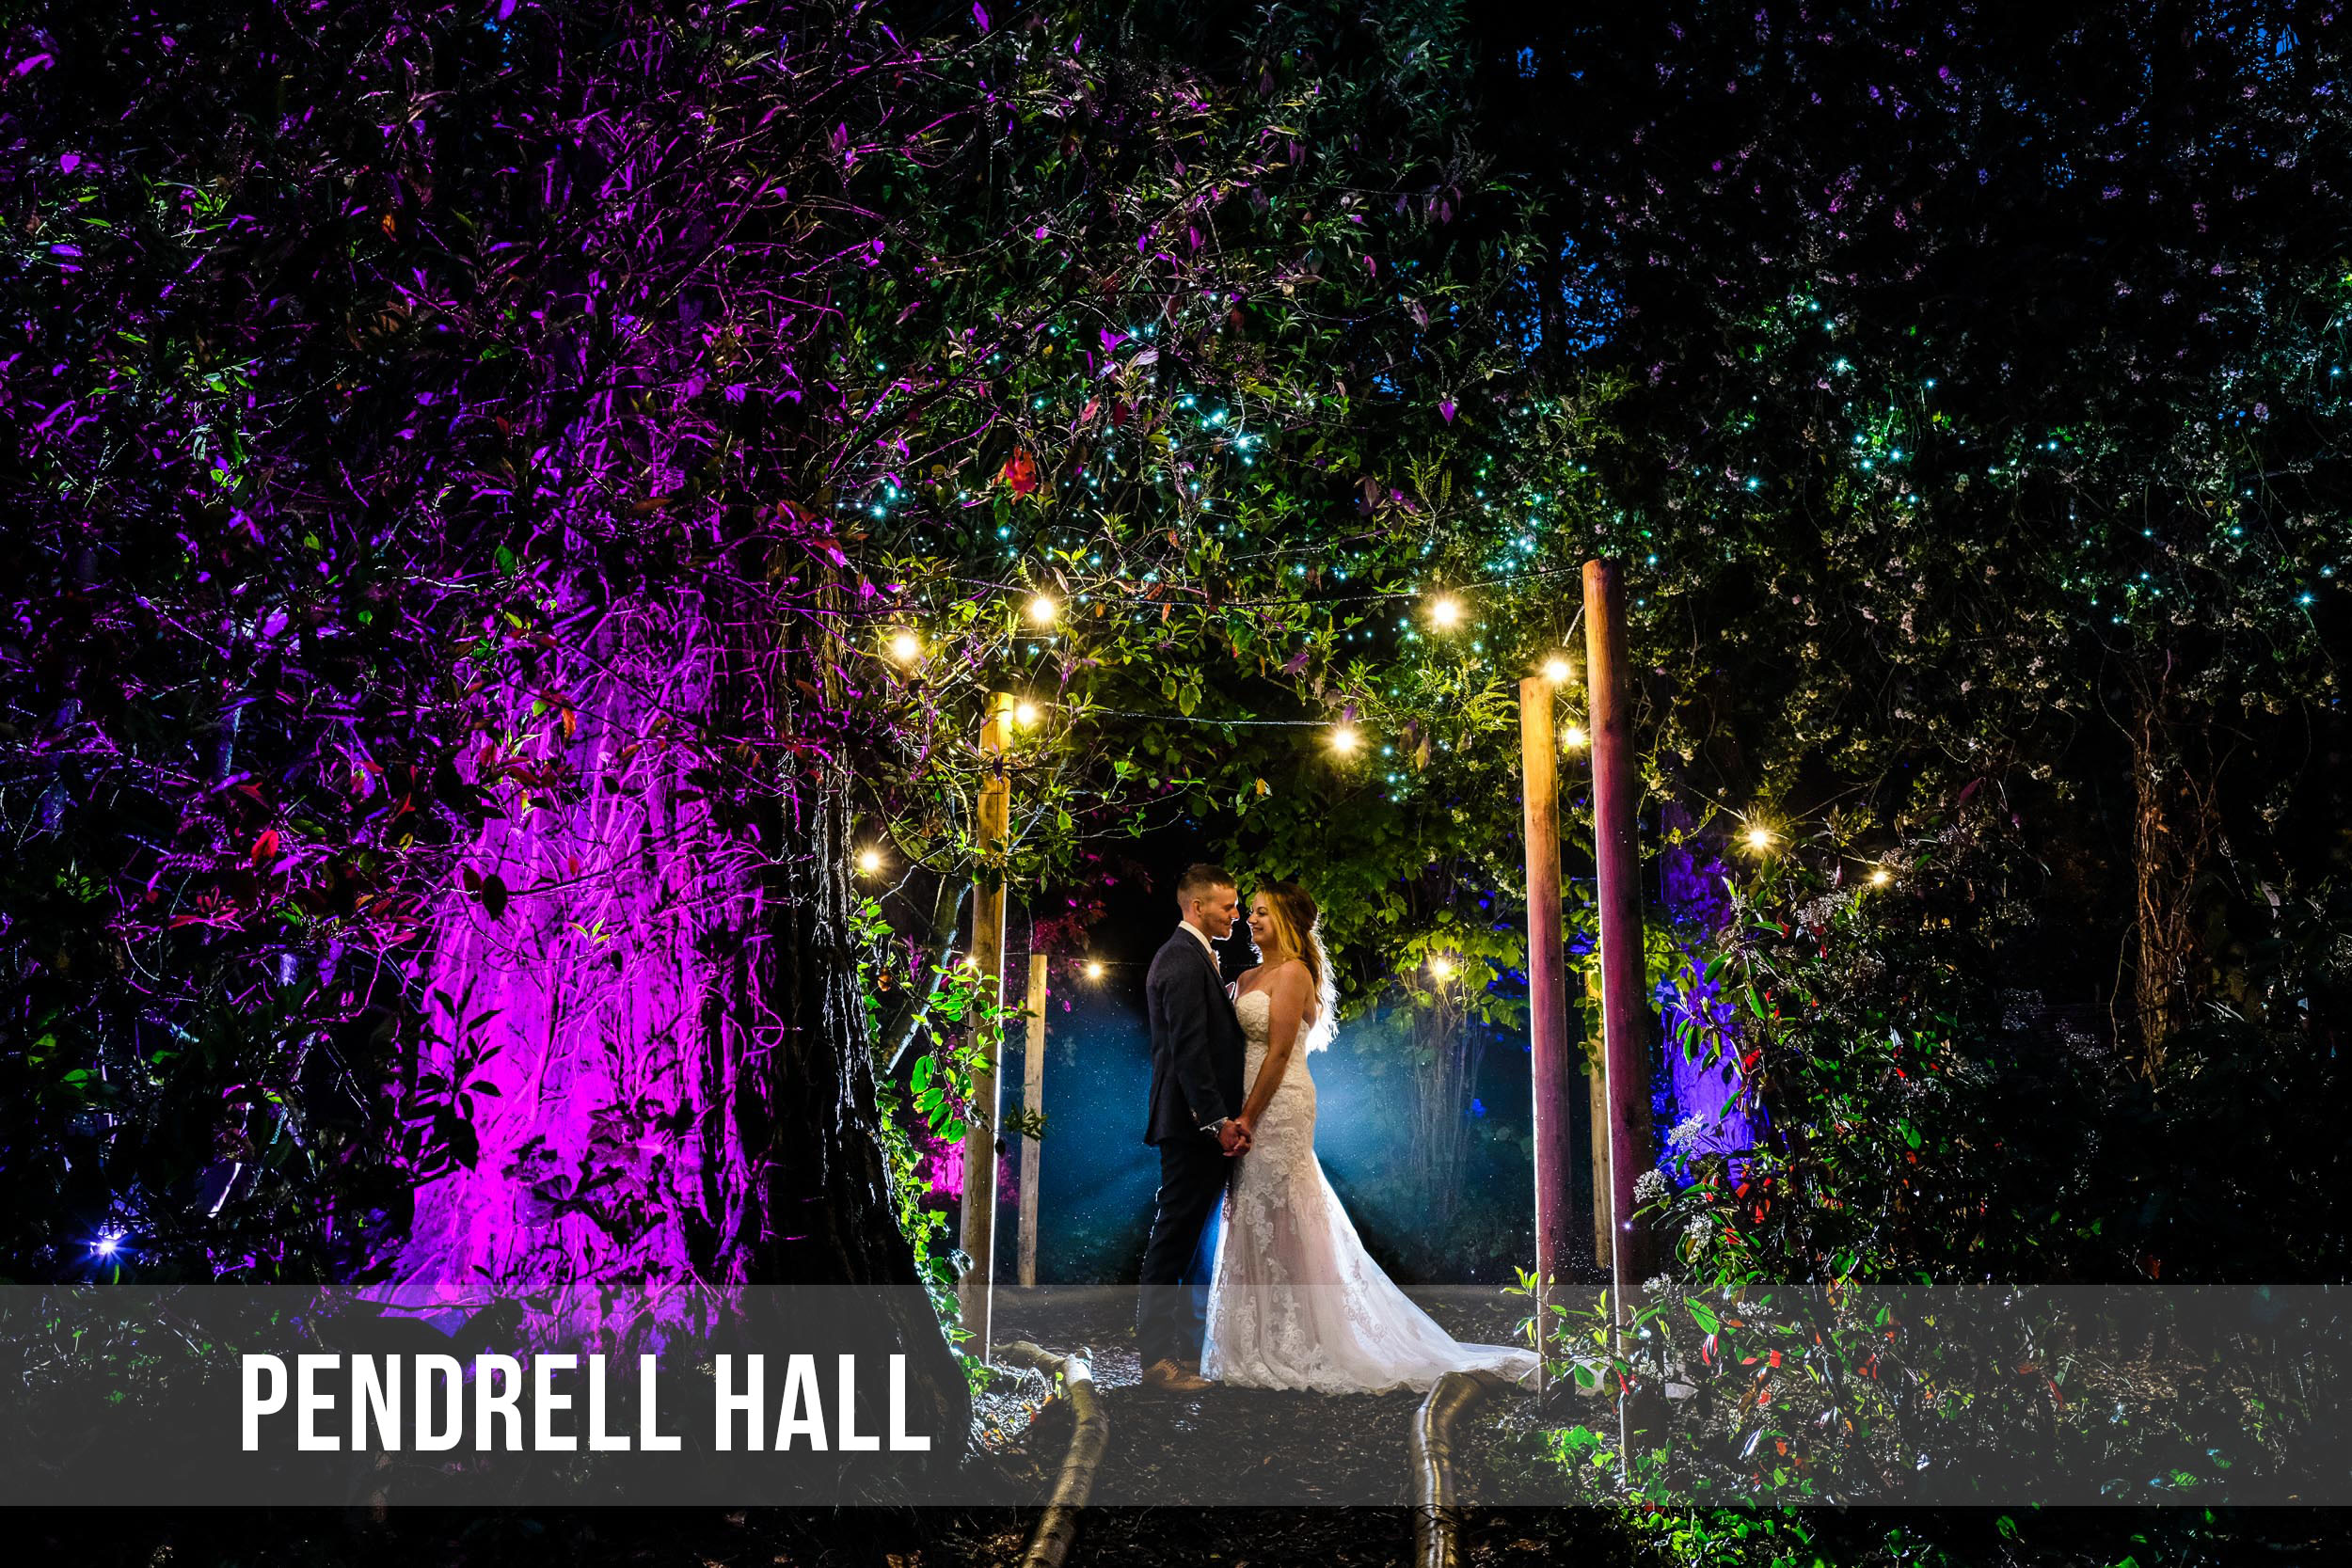 Pendrell Hall Wedding Photographer.jpg